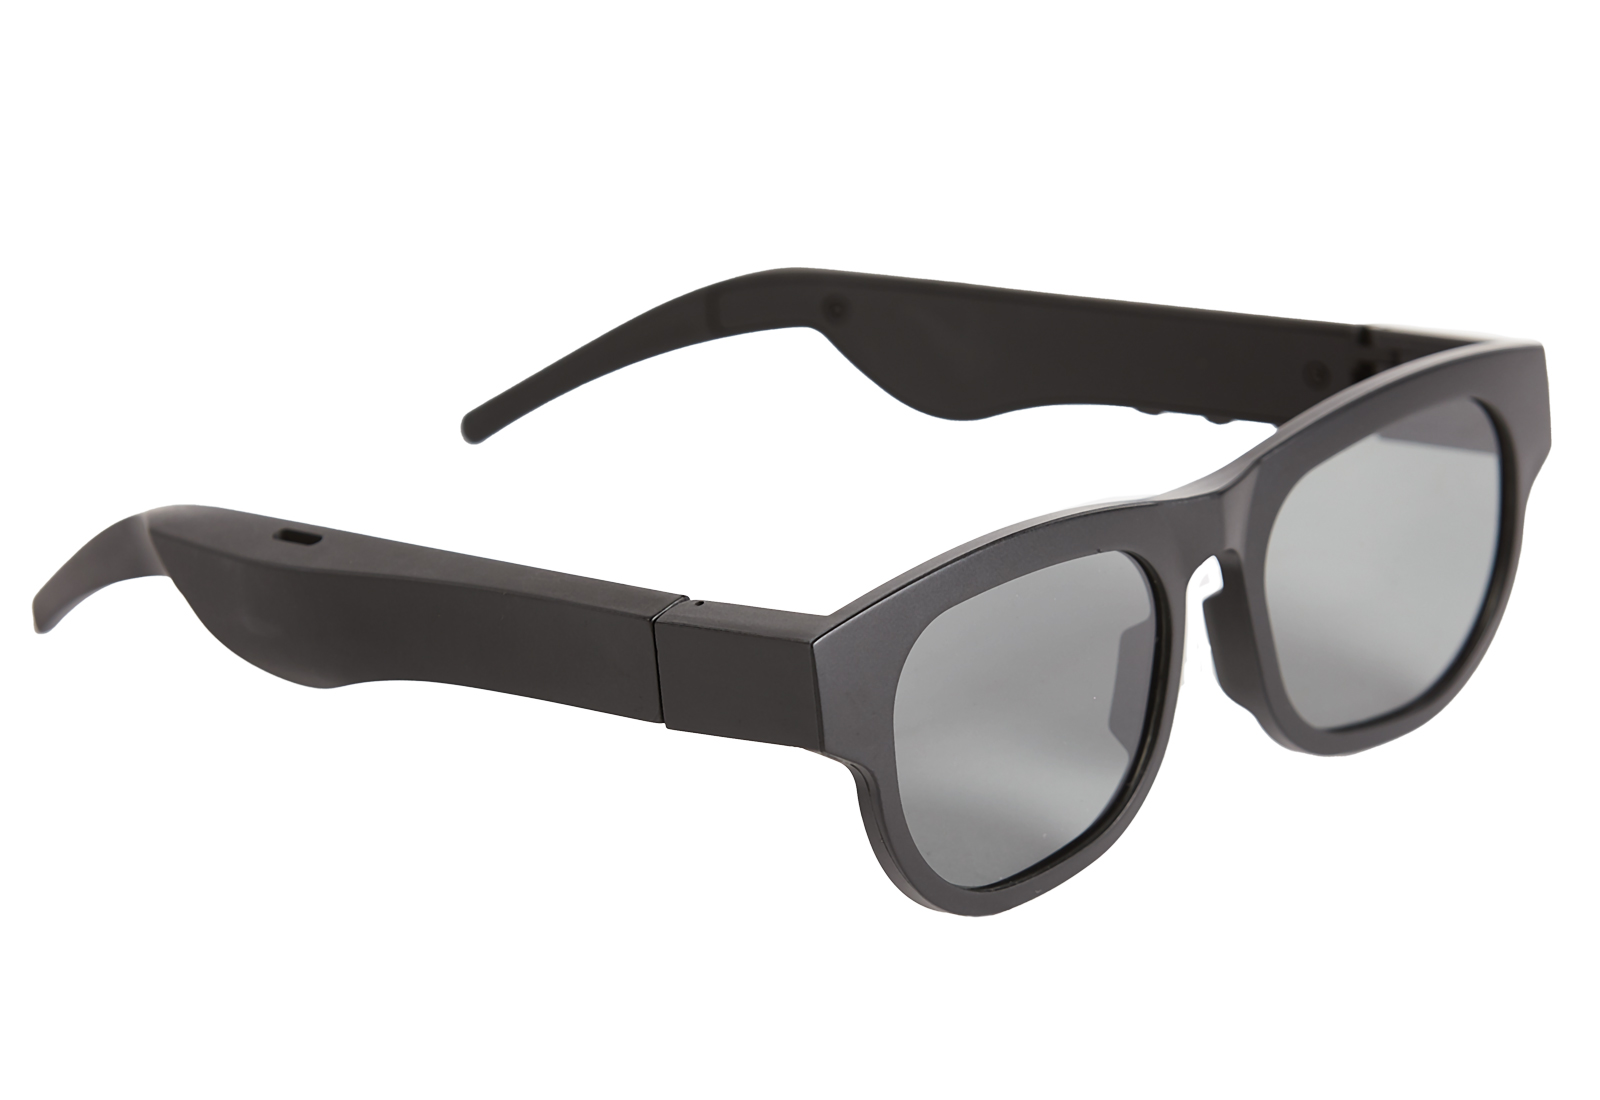 Sound Glasses Product Image